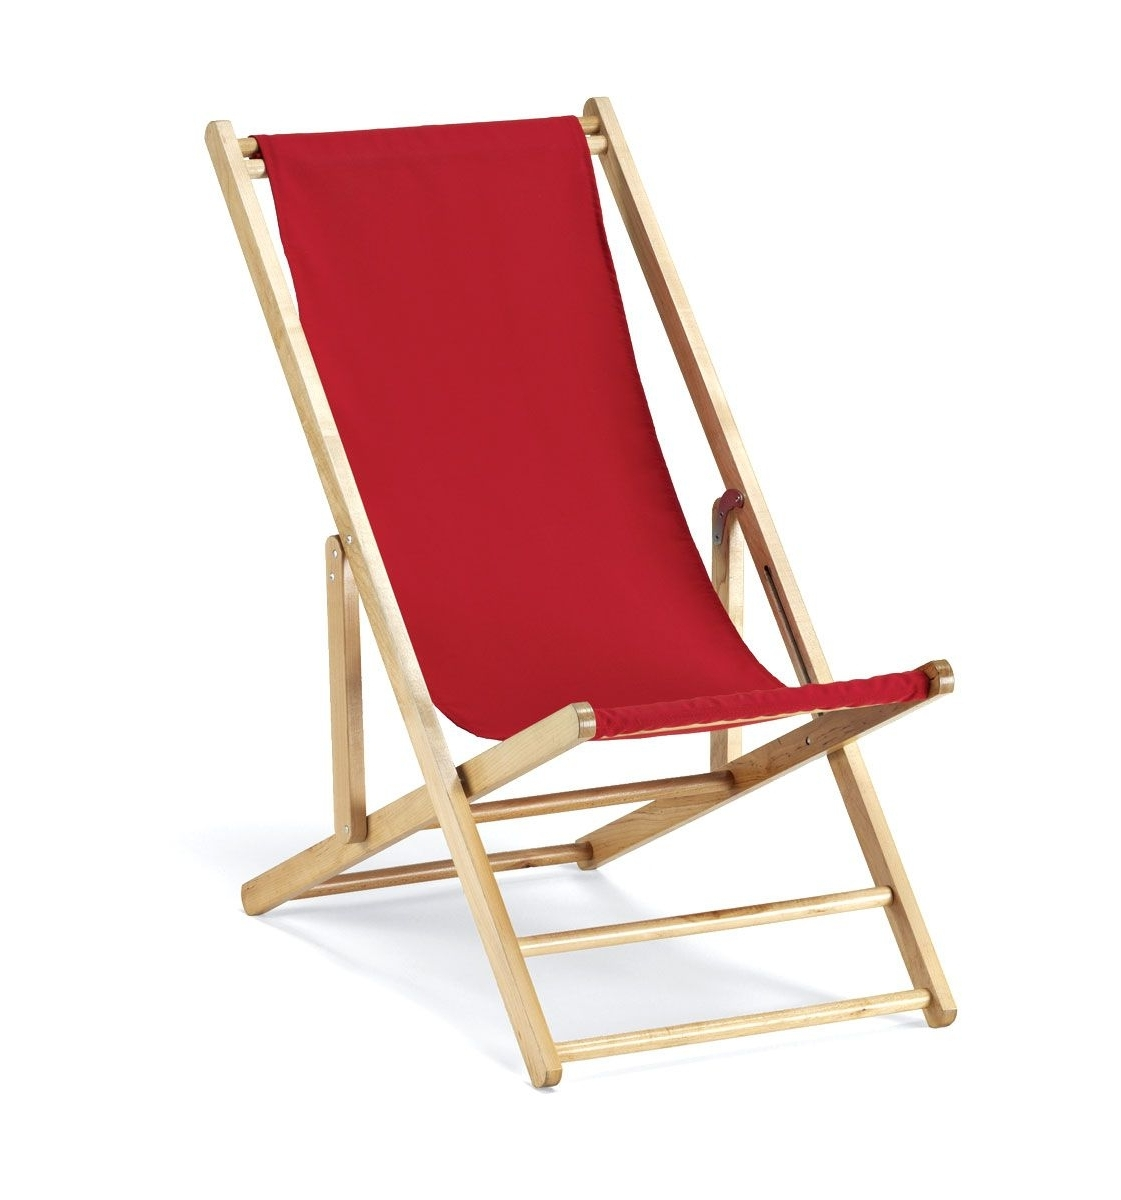 Beach Chaises Pertaining To Popular Sling Chair: Maintain And Clean Your Sling Chair Like (View 14 of 15)